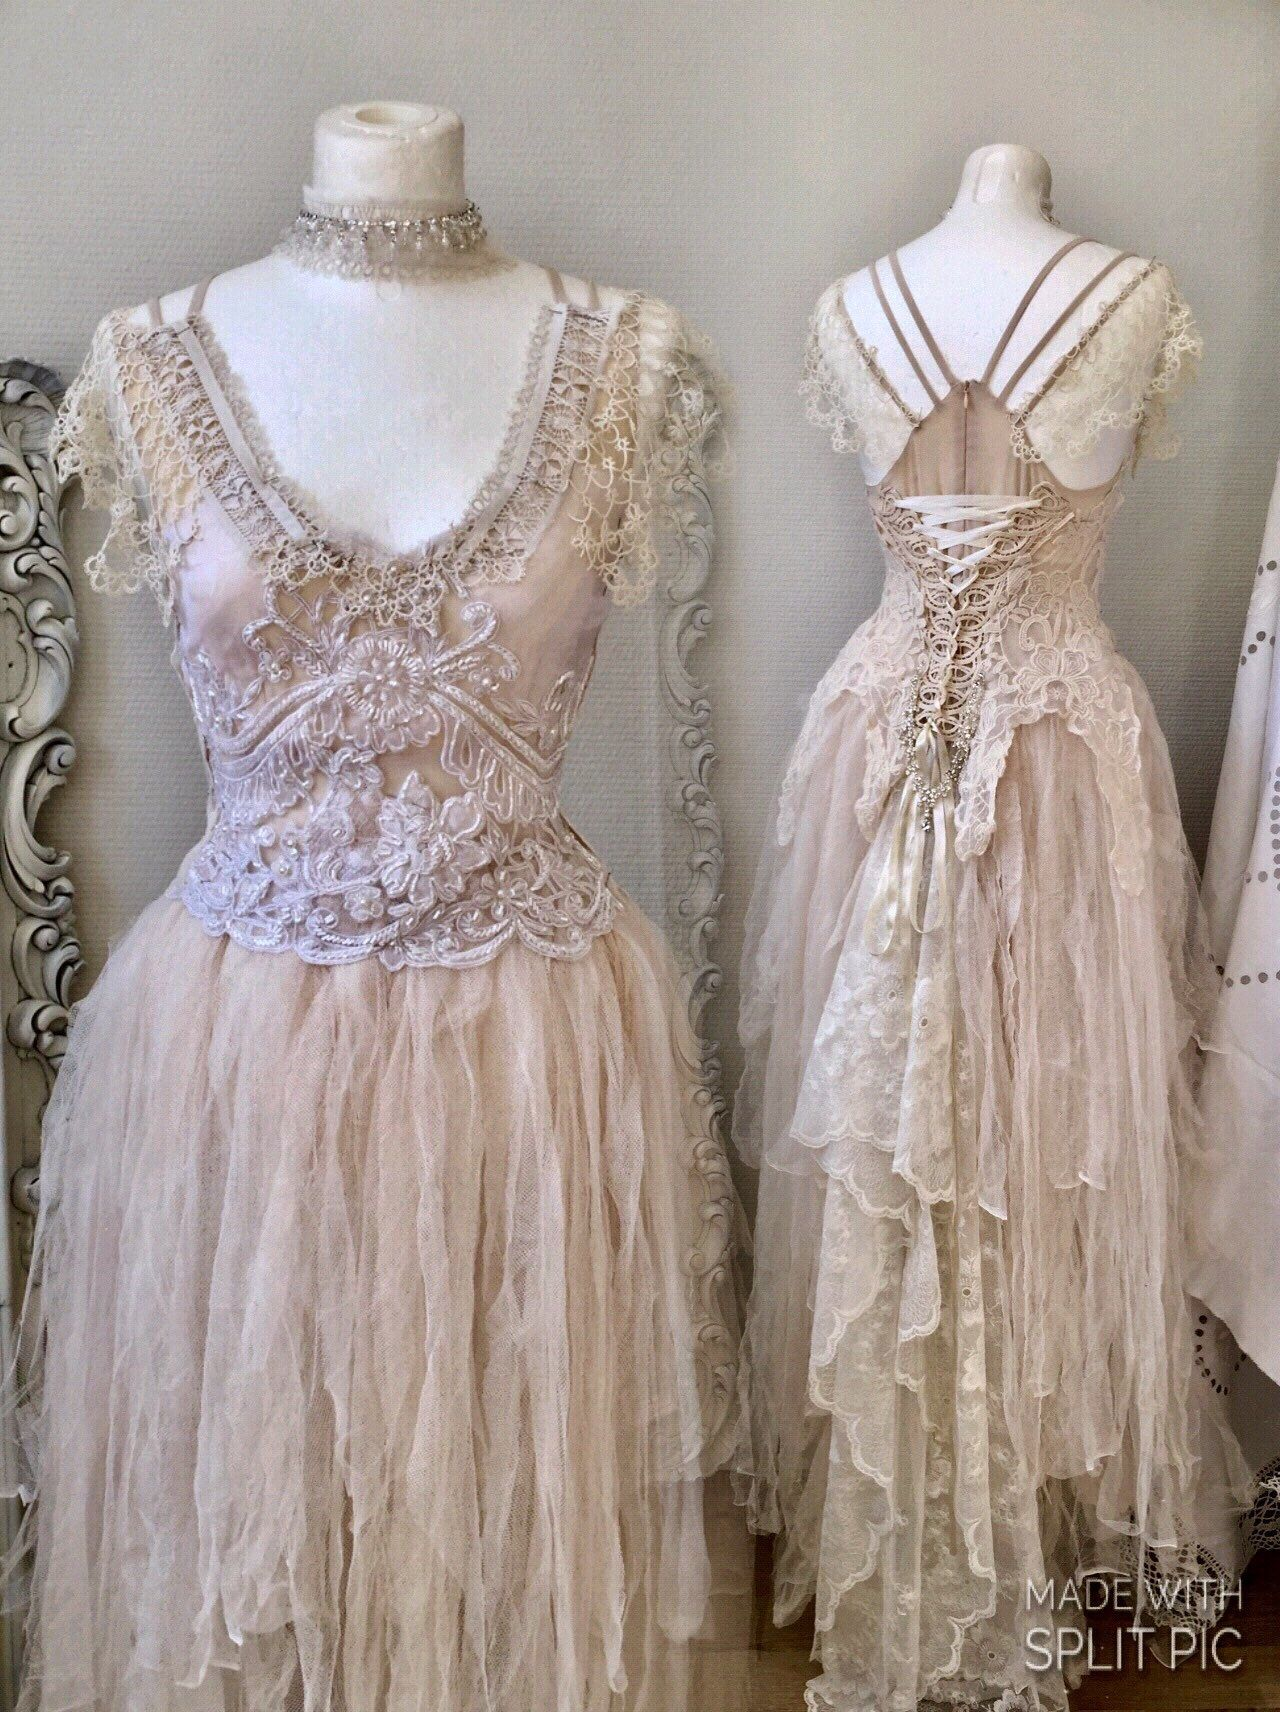 Wedding dress vintage inspiredbridal gown fairyboho wedding dress